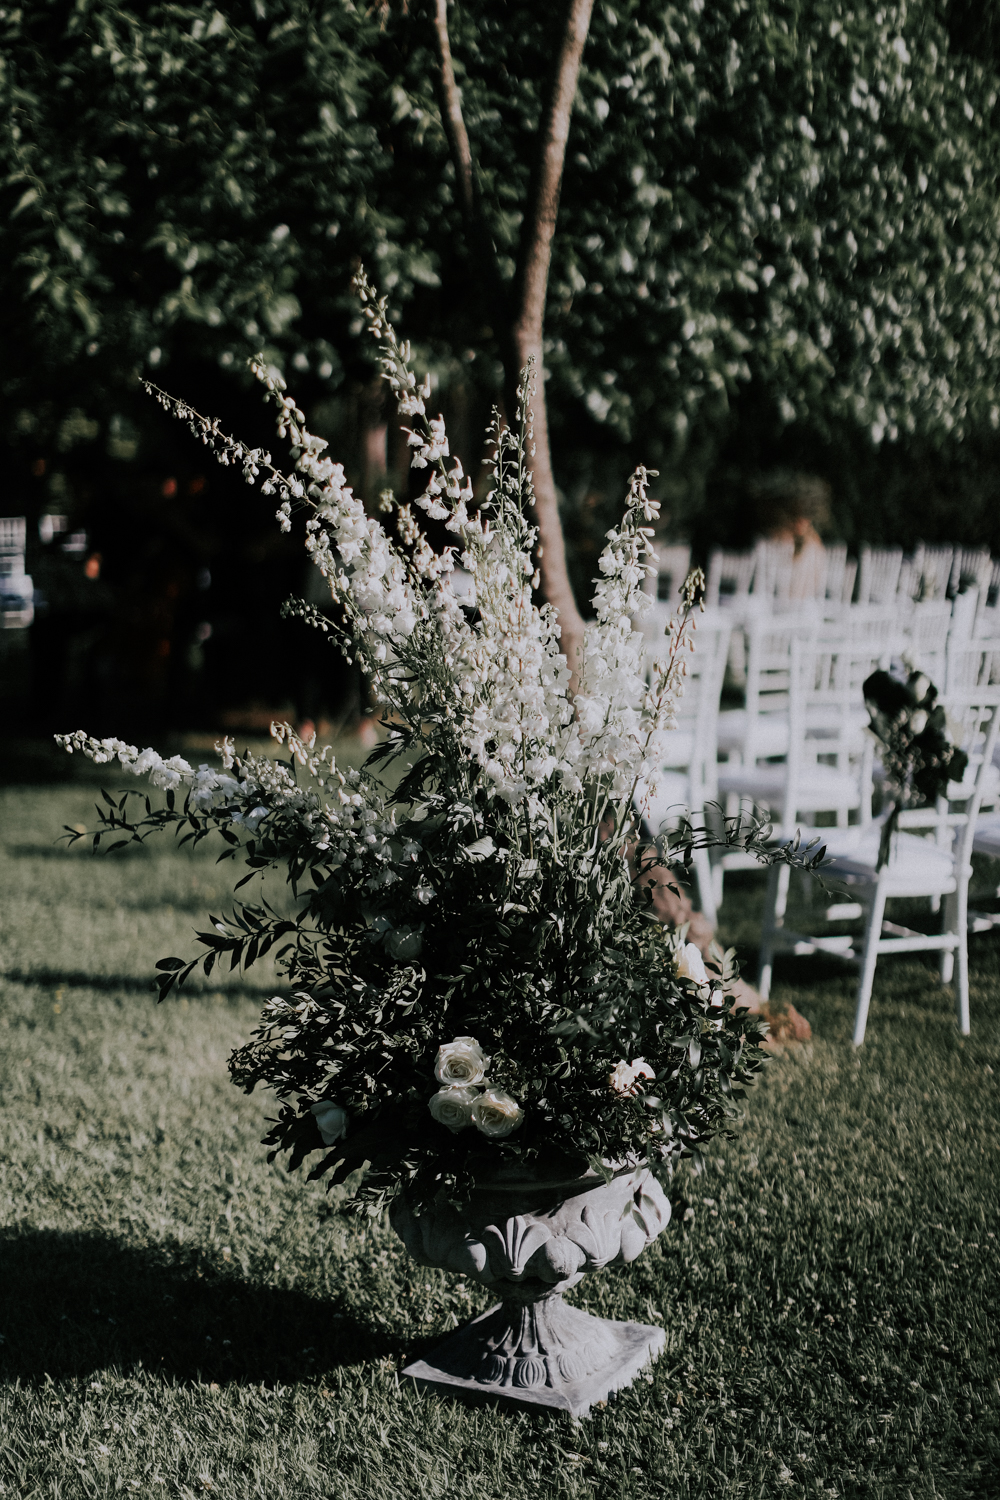 http://www.weddingamalfi.com/wp-content/uploads/Alessandro-and-Diego-wedding-flowers-in-the-garden.jpg